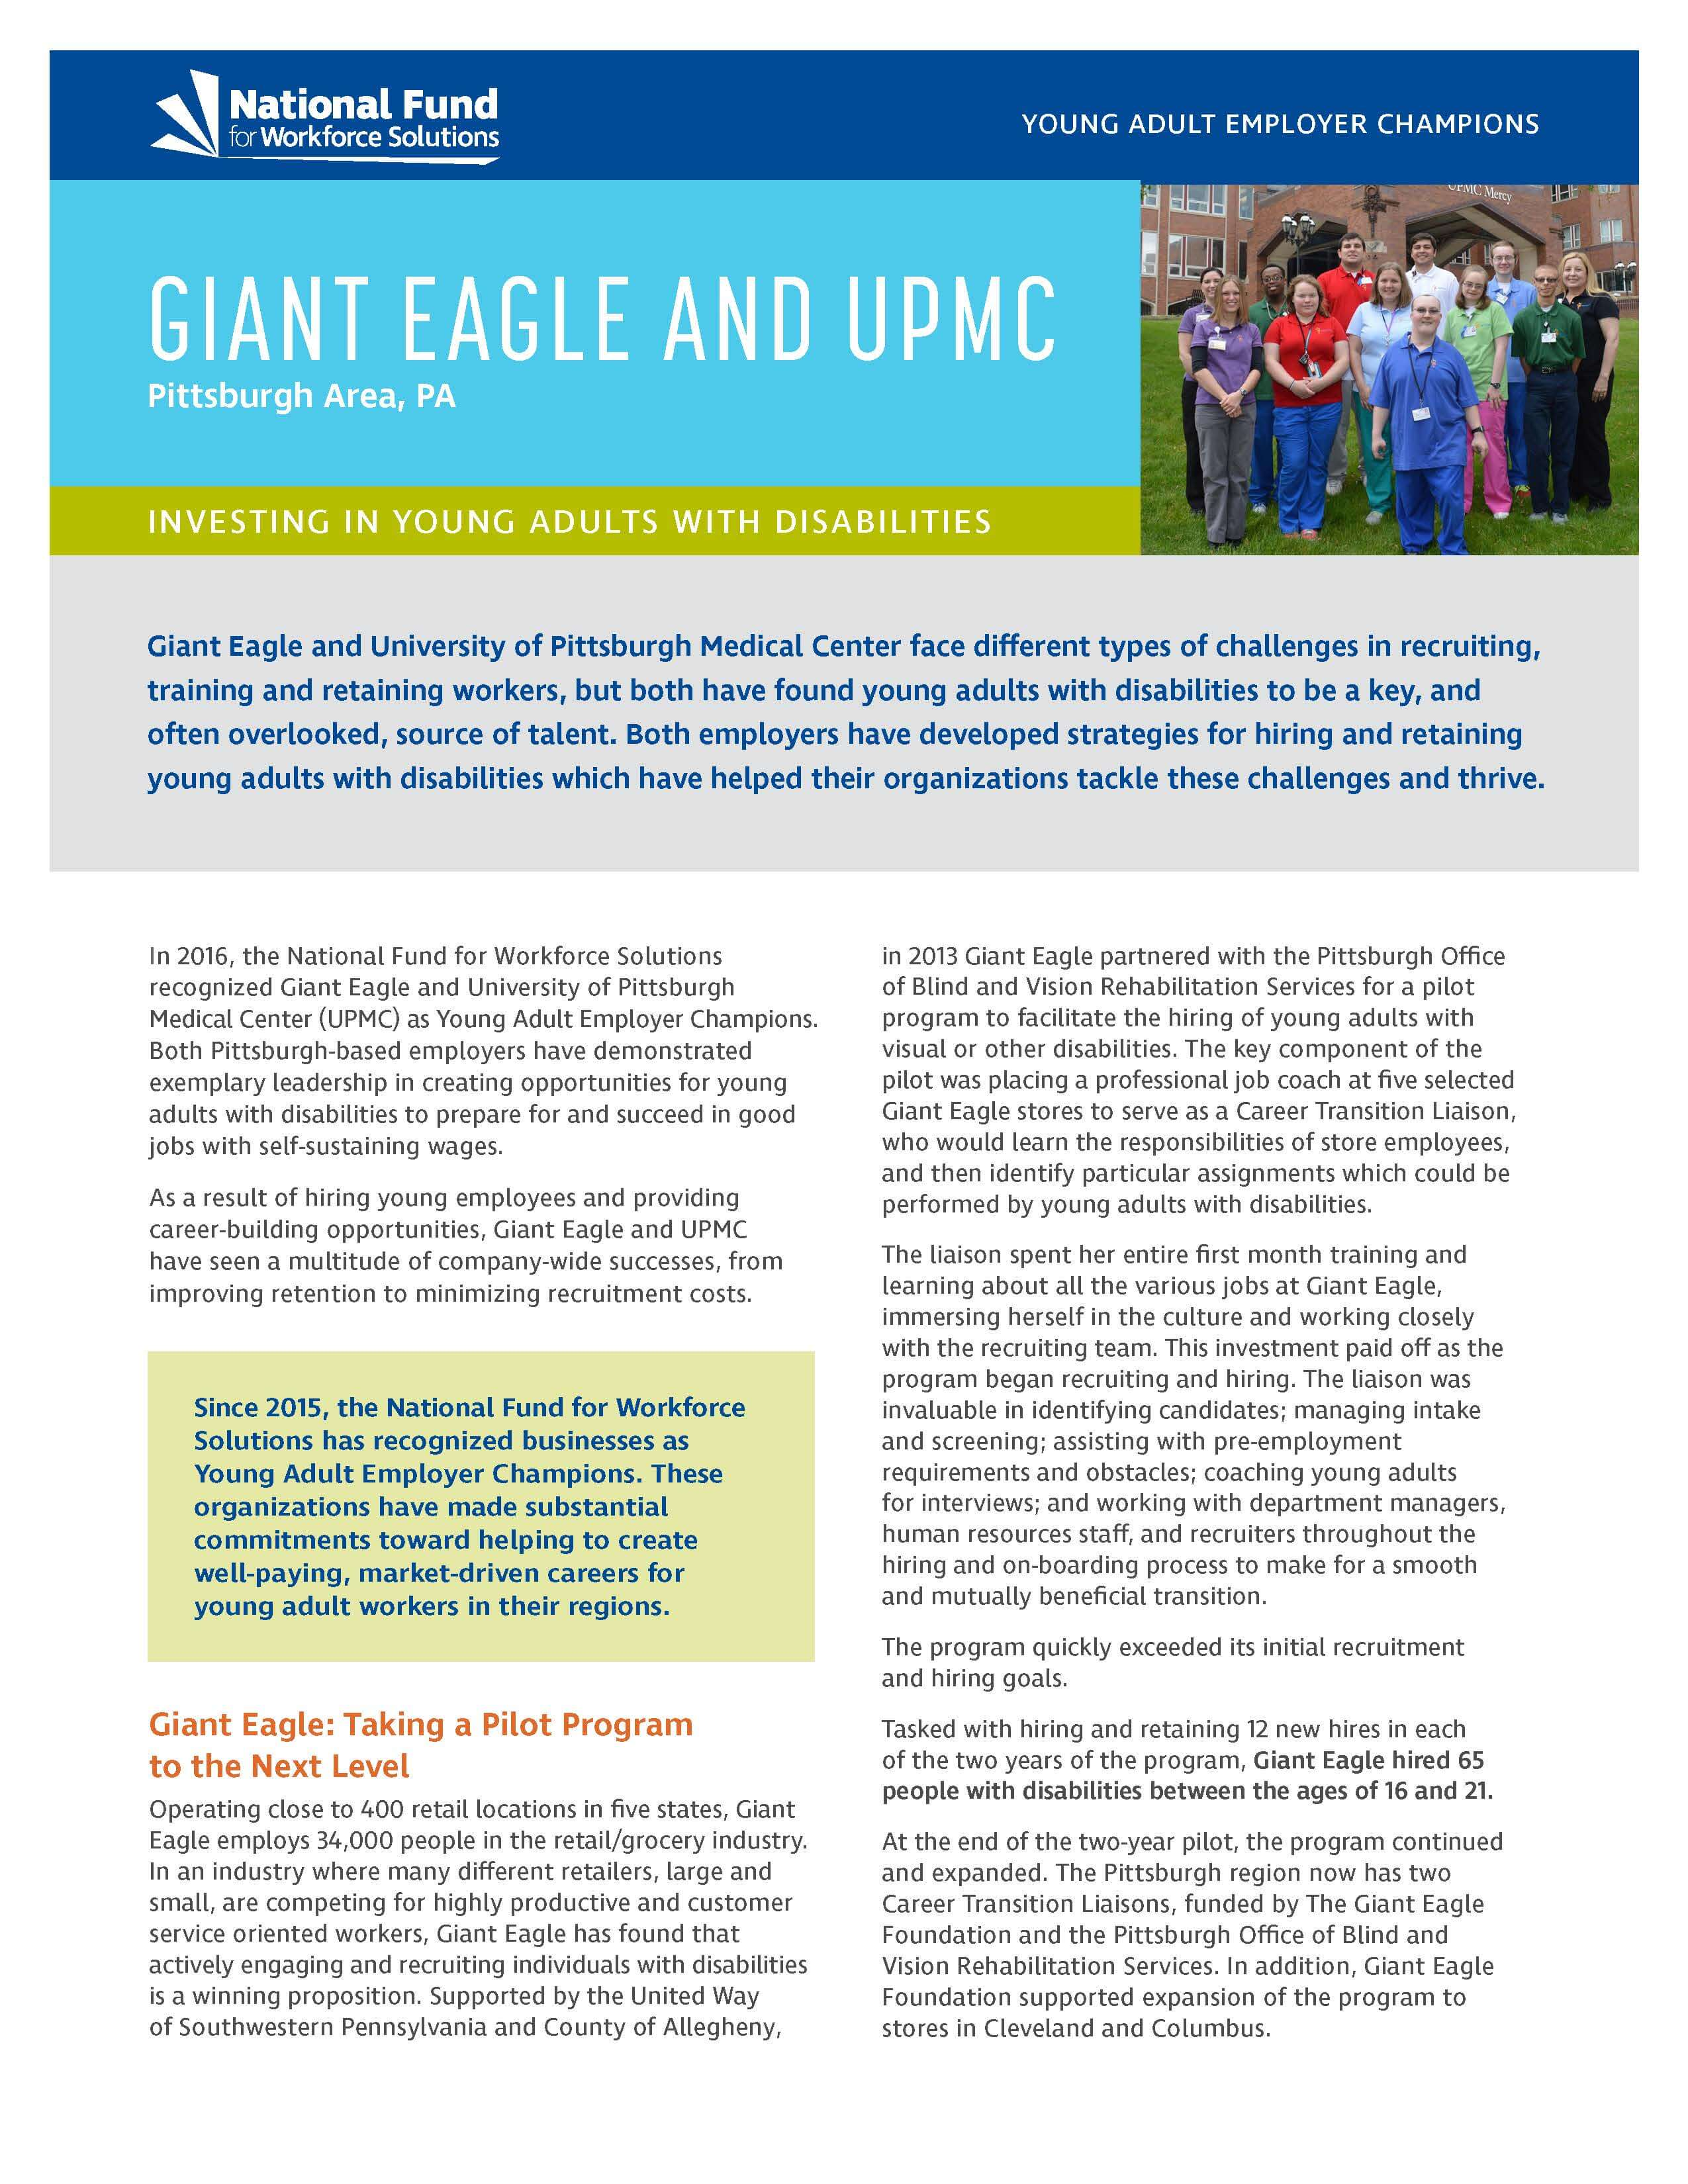 Giant Eagle and UPMC: Investing in Young Adults with Disabilities